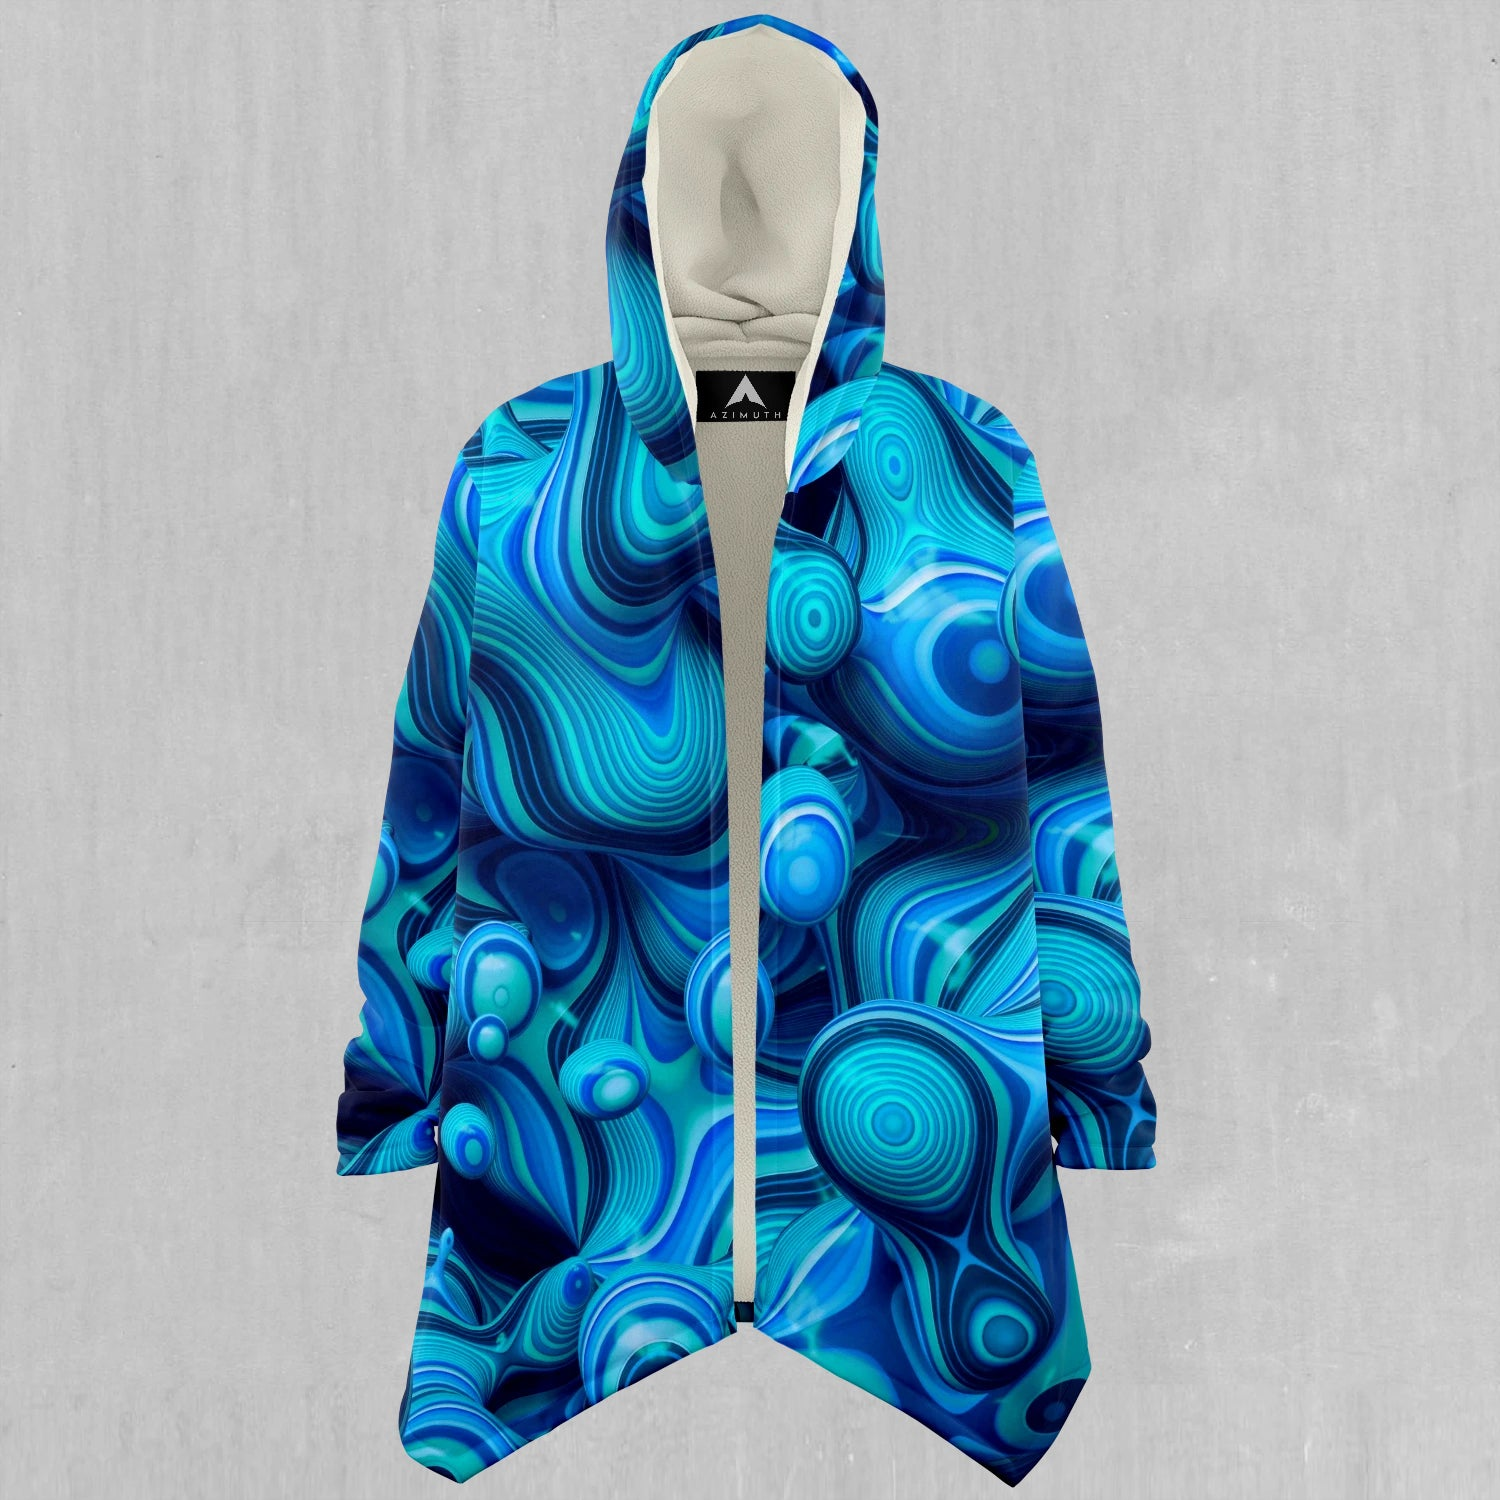 Aqua Pool Cloak - Azimuth Clothing